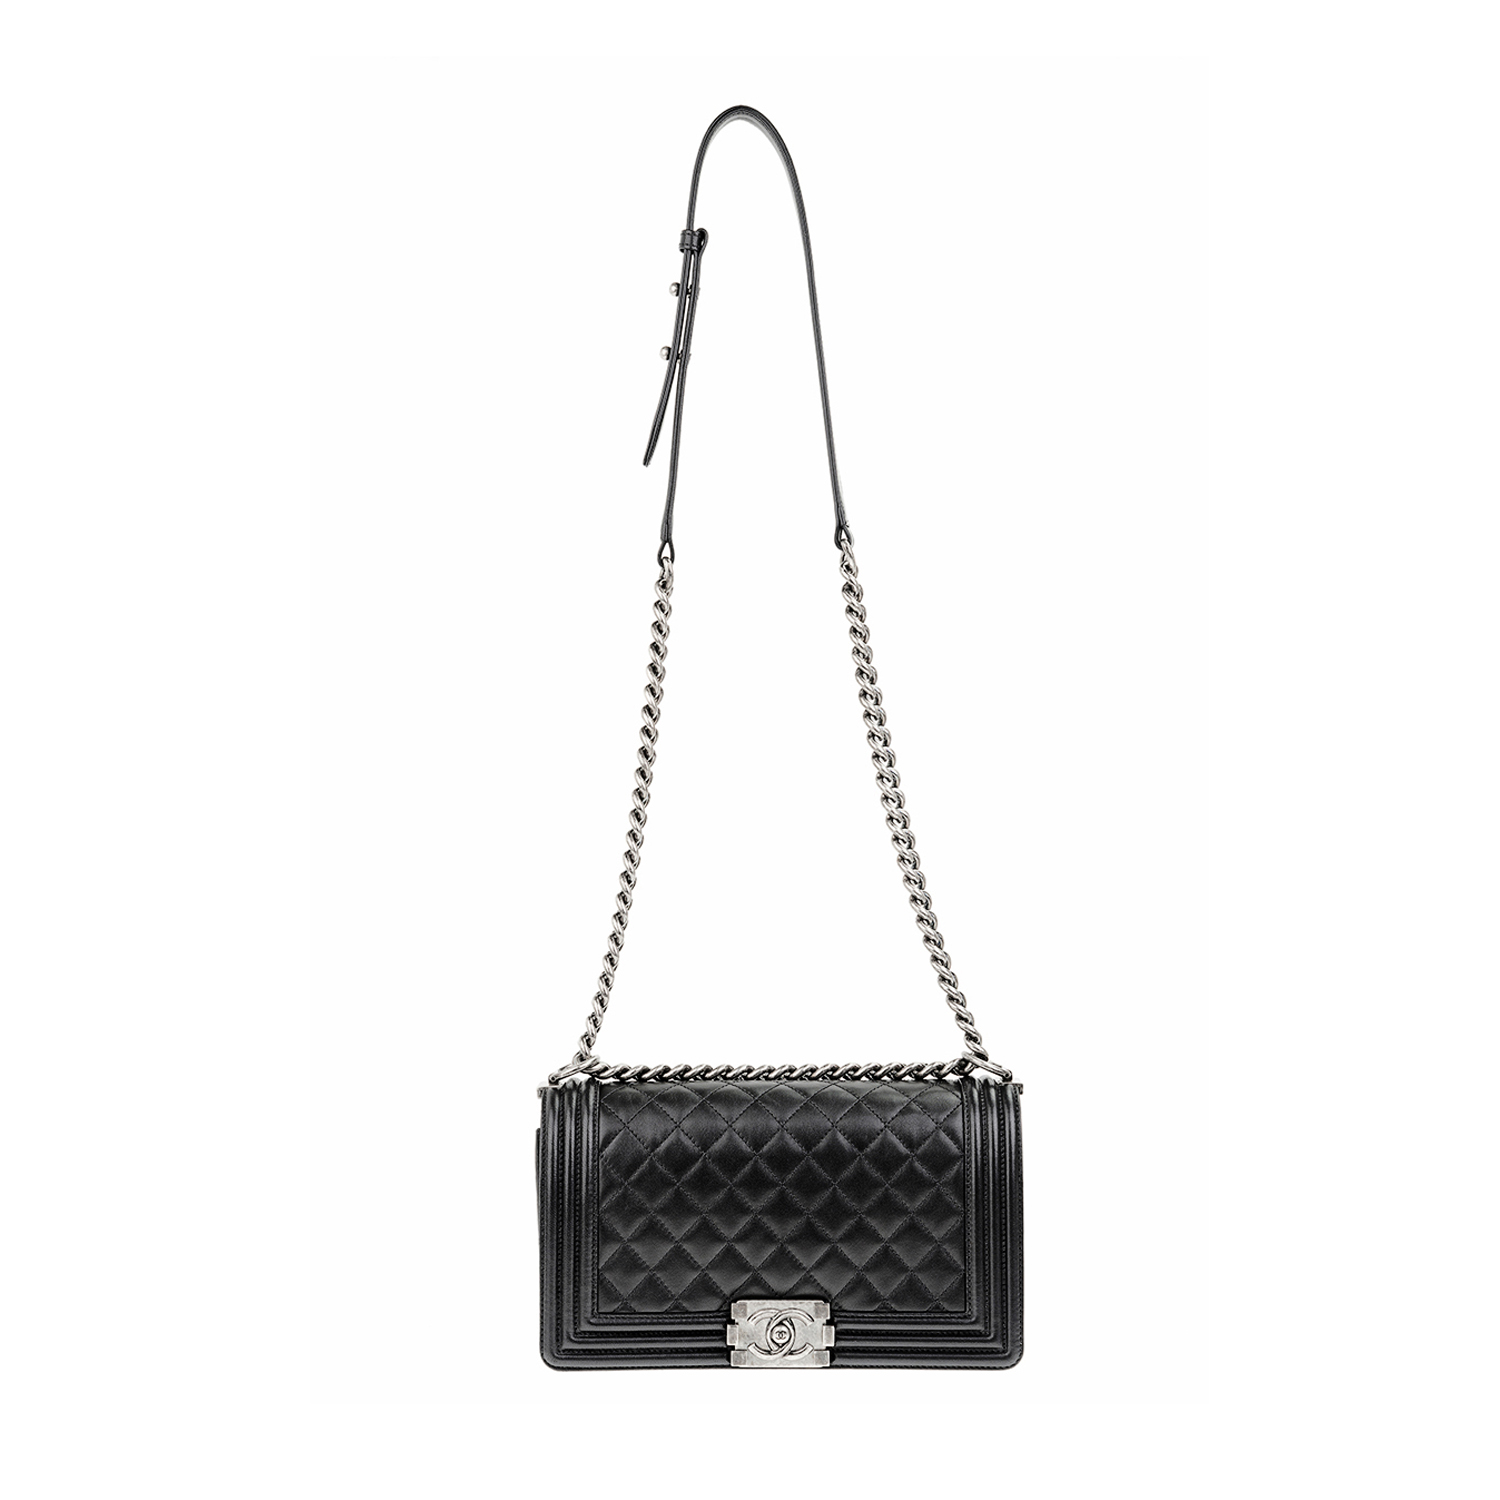 hermes ostrich birkin bag - Noleggio Borsa Boy Chanel - su Rent Fashion Bag